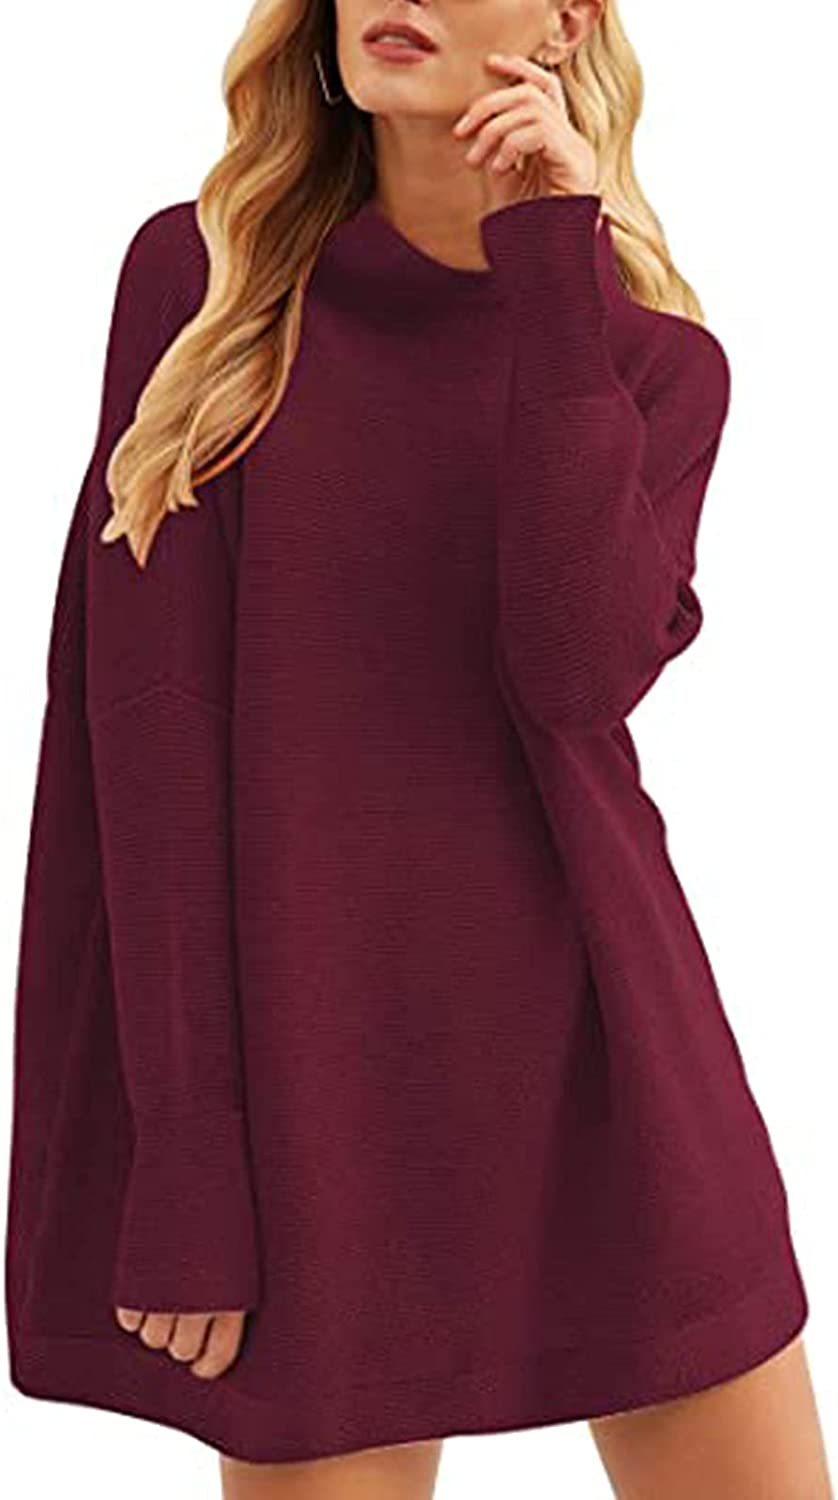 Womens Turtleneck Pullover Sweaters Oversized Batwing Long Sleeve Loose Knitted Jumpers Tops High Collar Outerwear Pullover